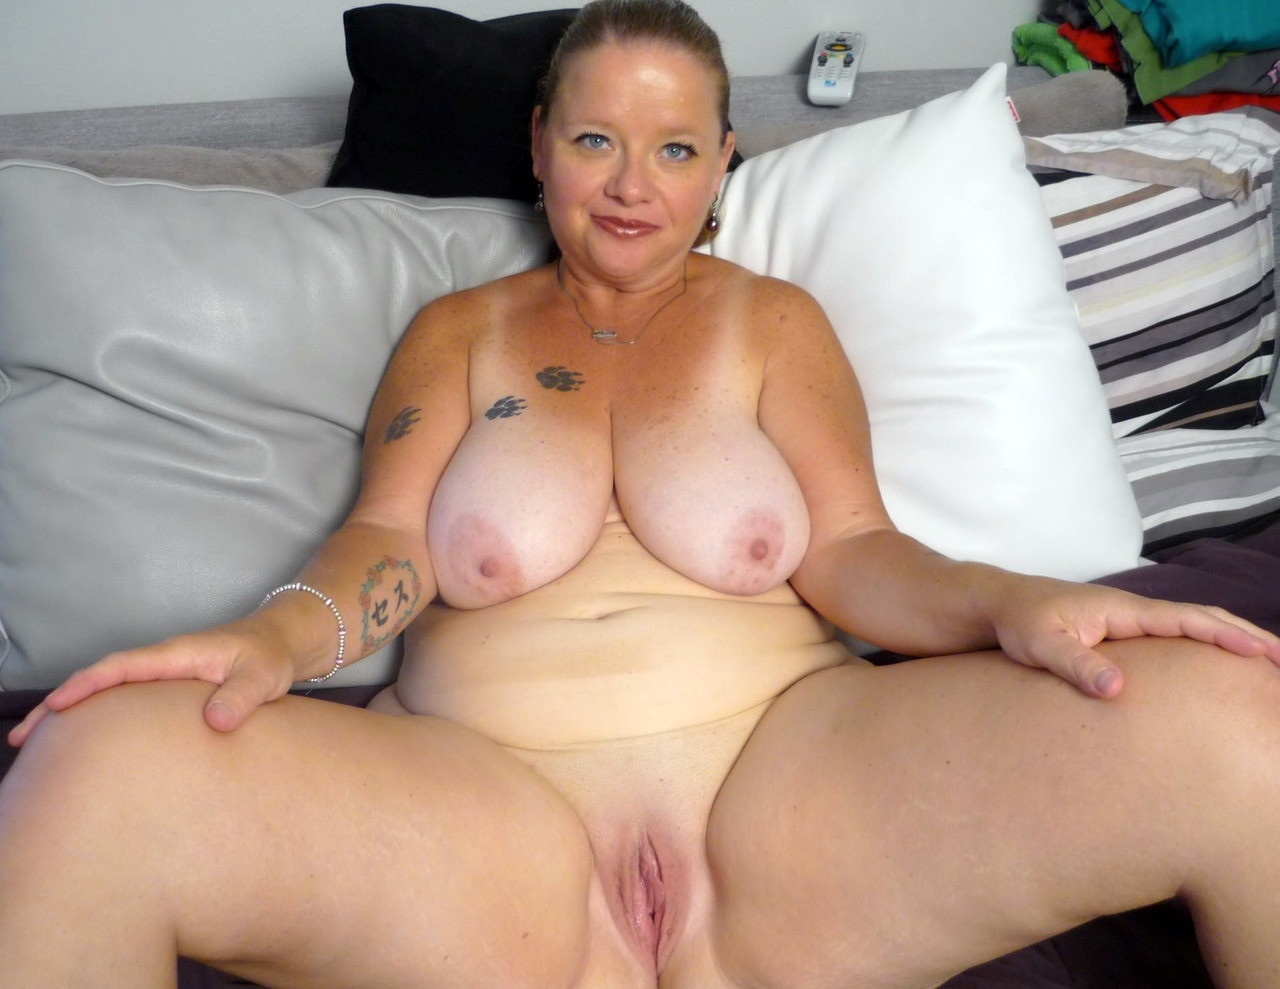 Pierced pussy insertion in ass